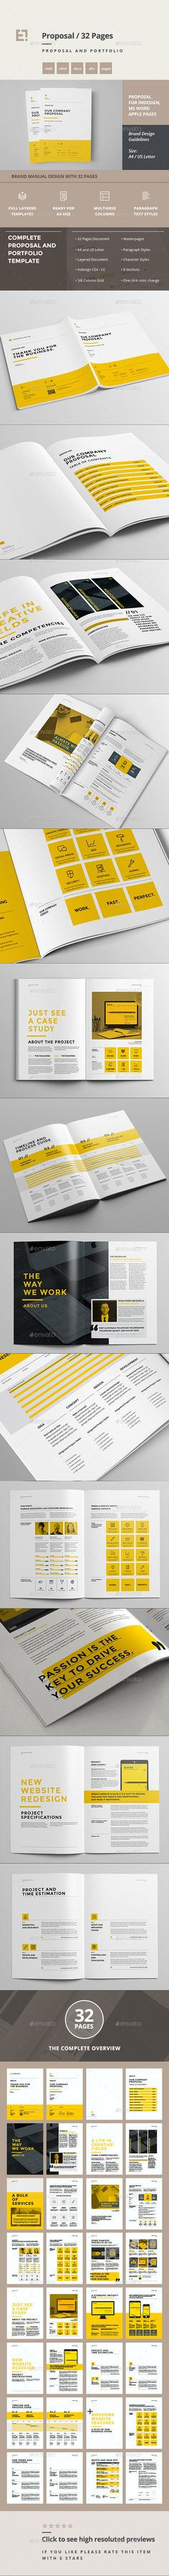 #Proposal - Proposals & Invoices Stationery Download Here:  https://graphicriver.net/item/proposal/11711183?ref=suz_562geid